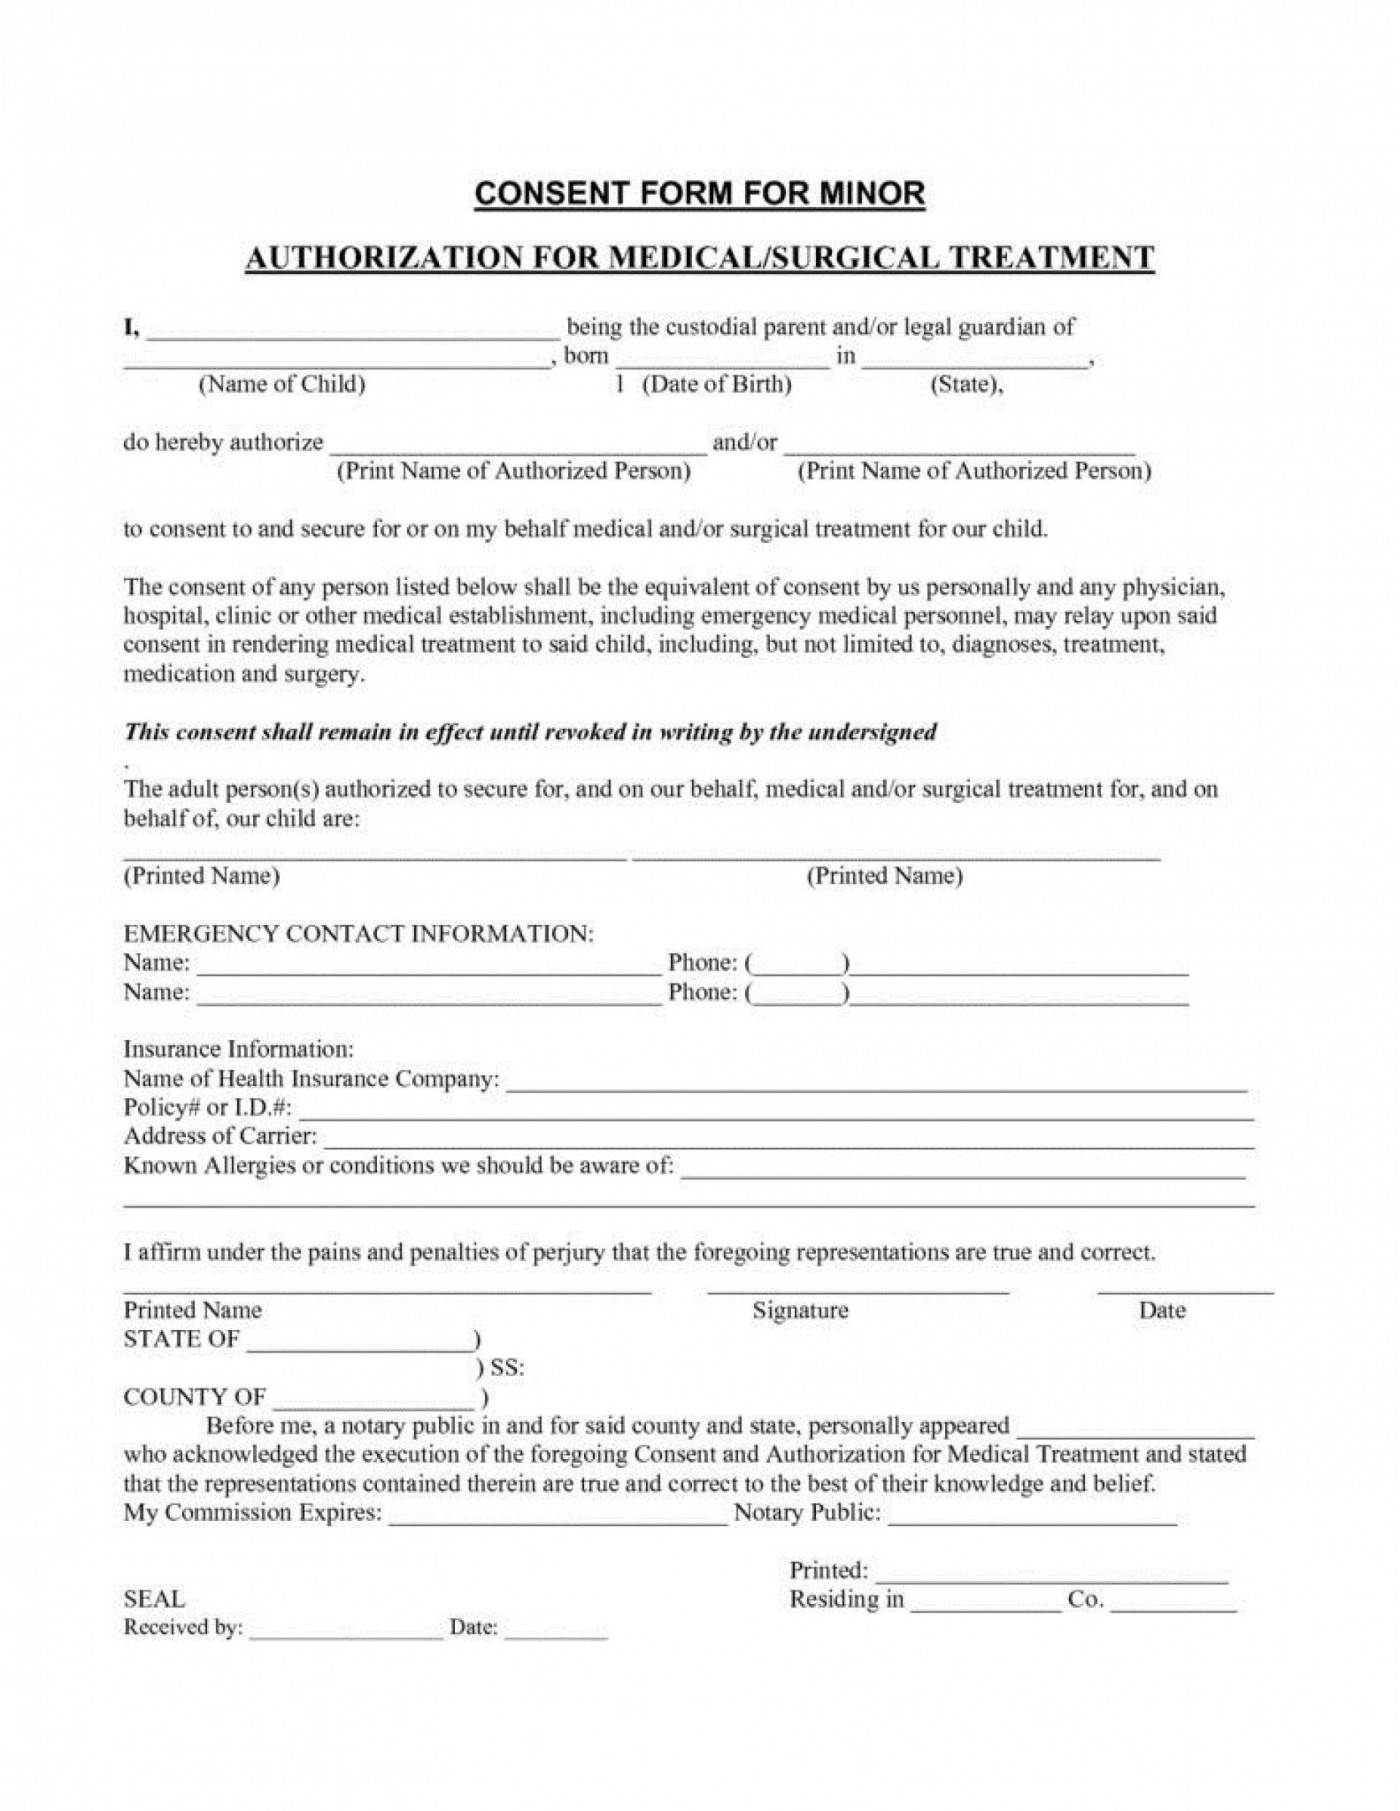 006 Amazing Medical Treatment Authorization And Consent Form Template Design 1400